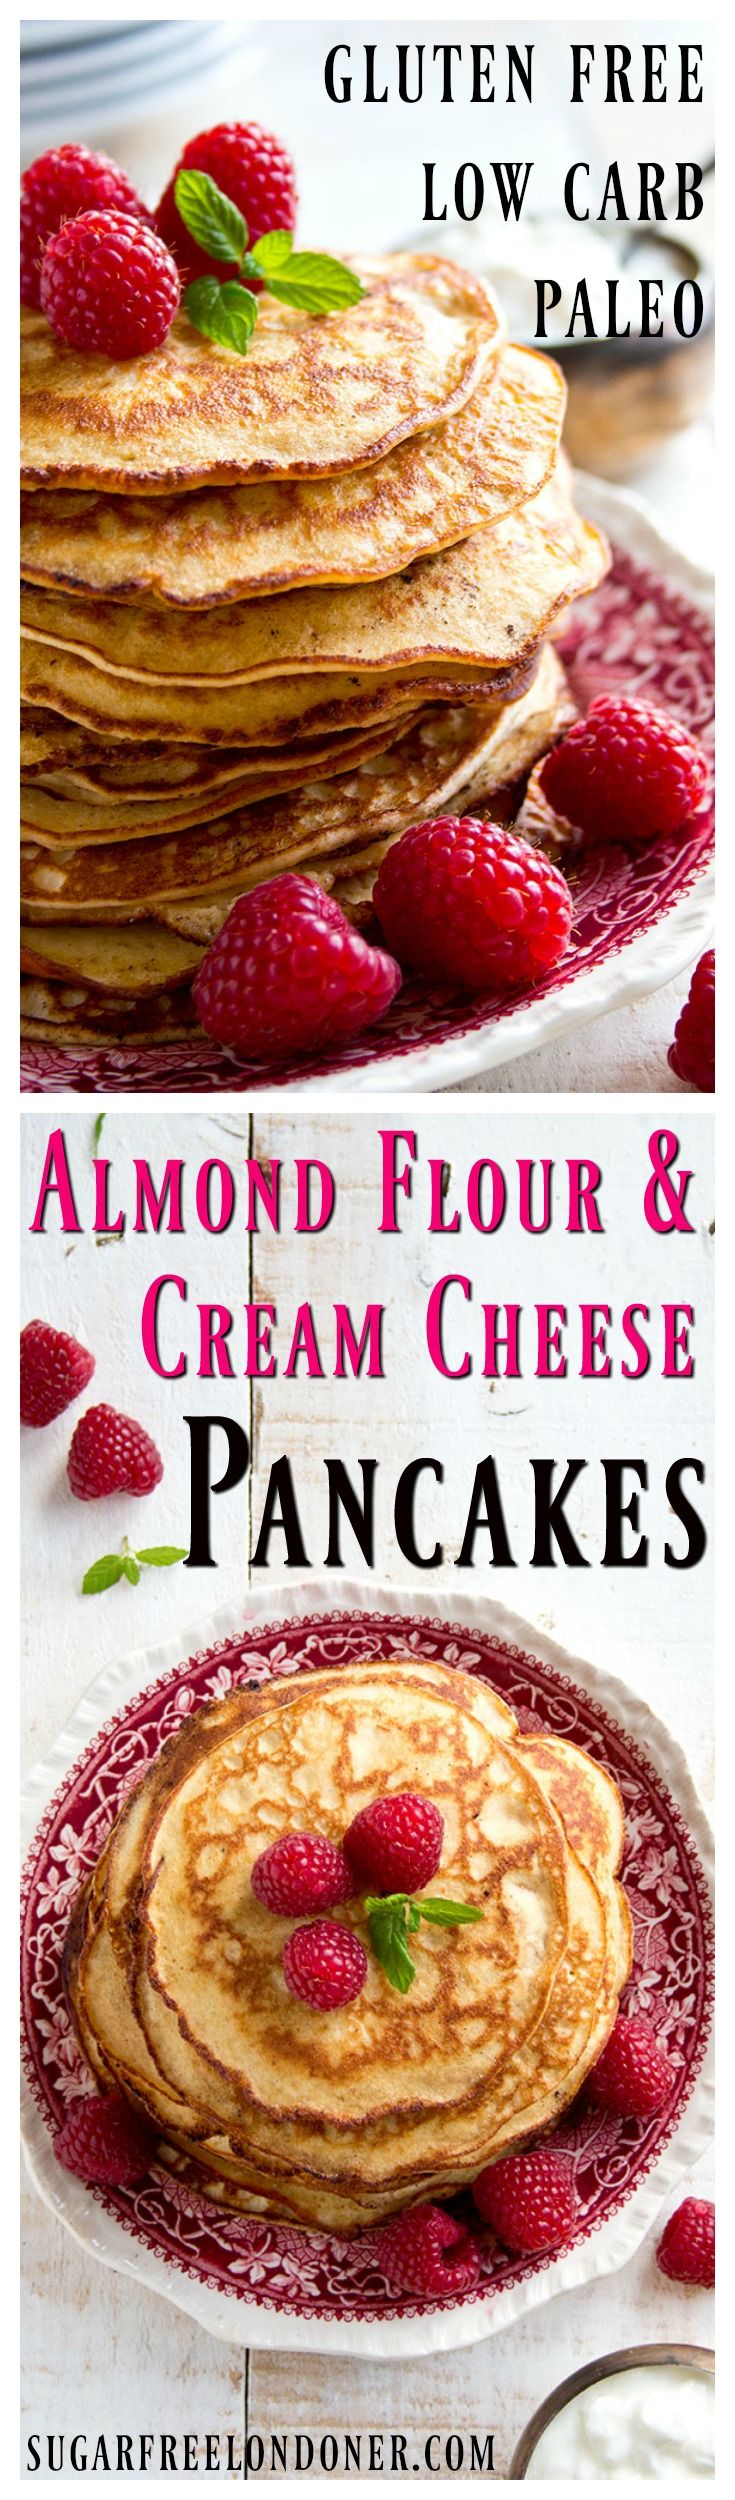 Light and fluffy pancakes that are low carb, gluten free and so easy to make: These Almond Cream Cheese Pancakes are a healthy sugar free breakfast choice.